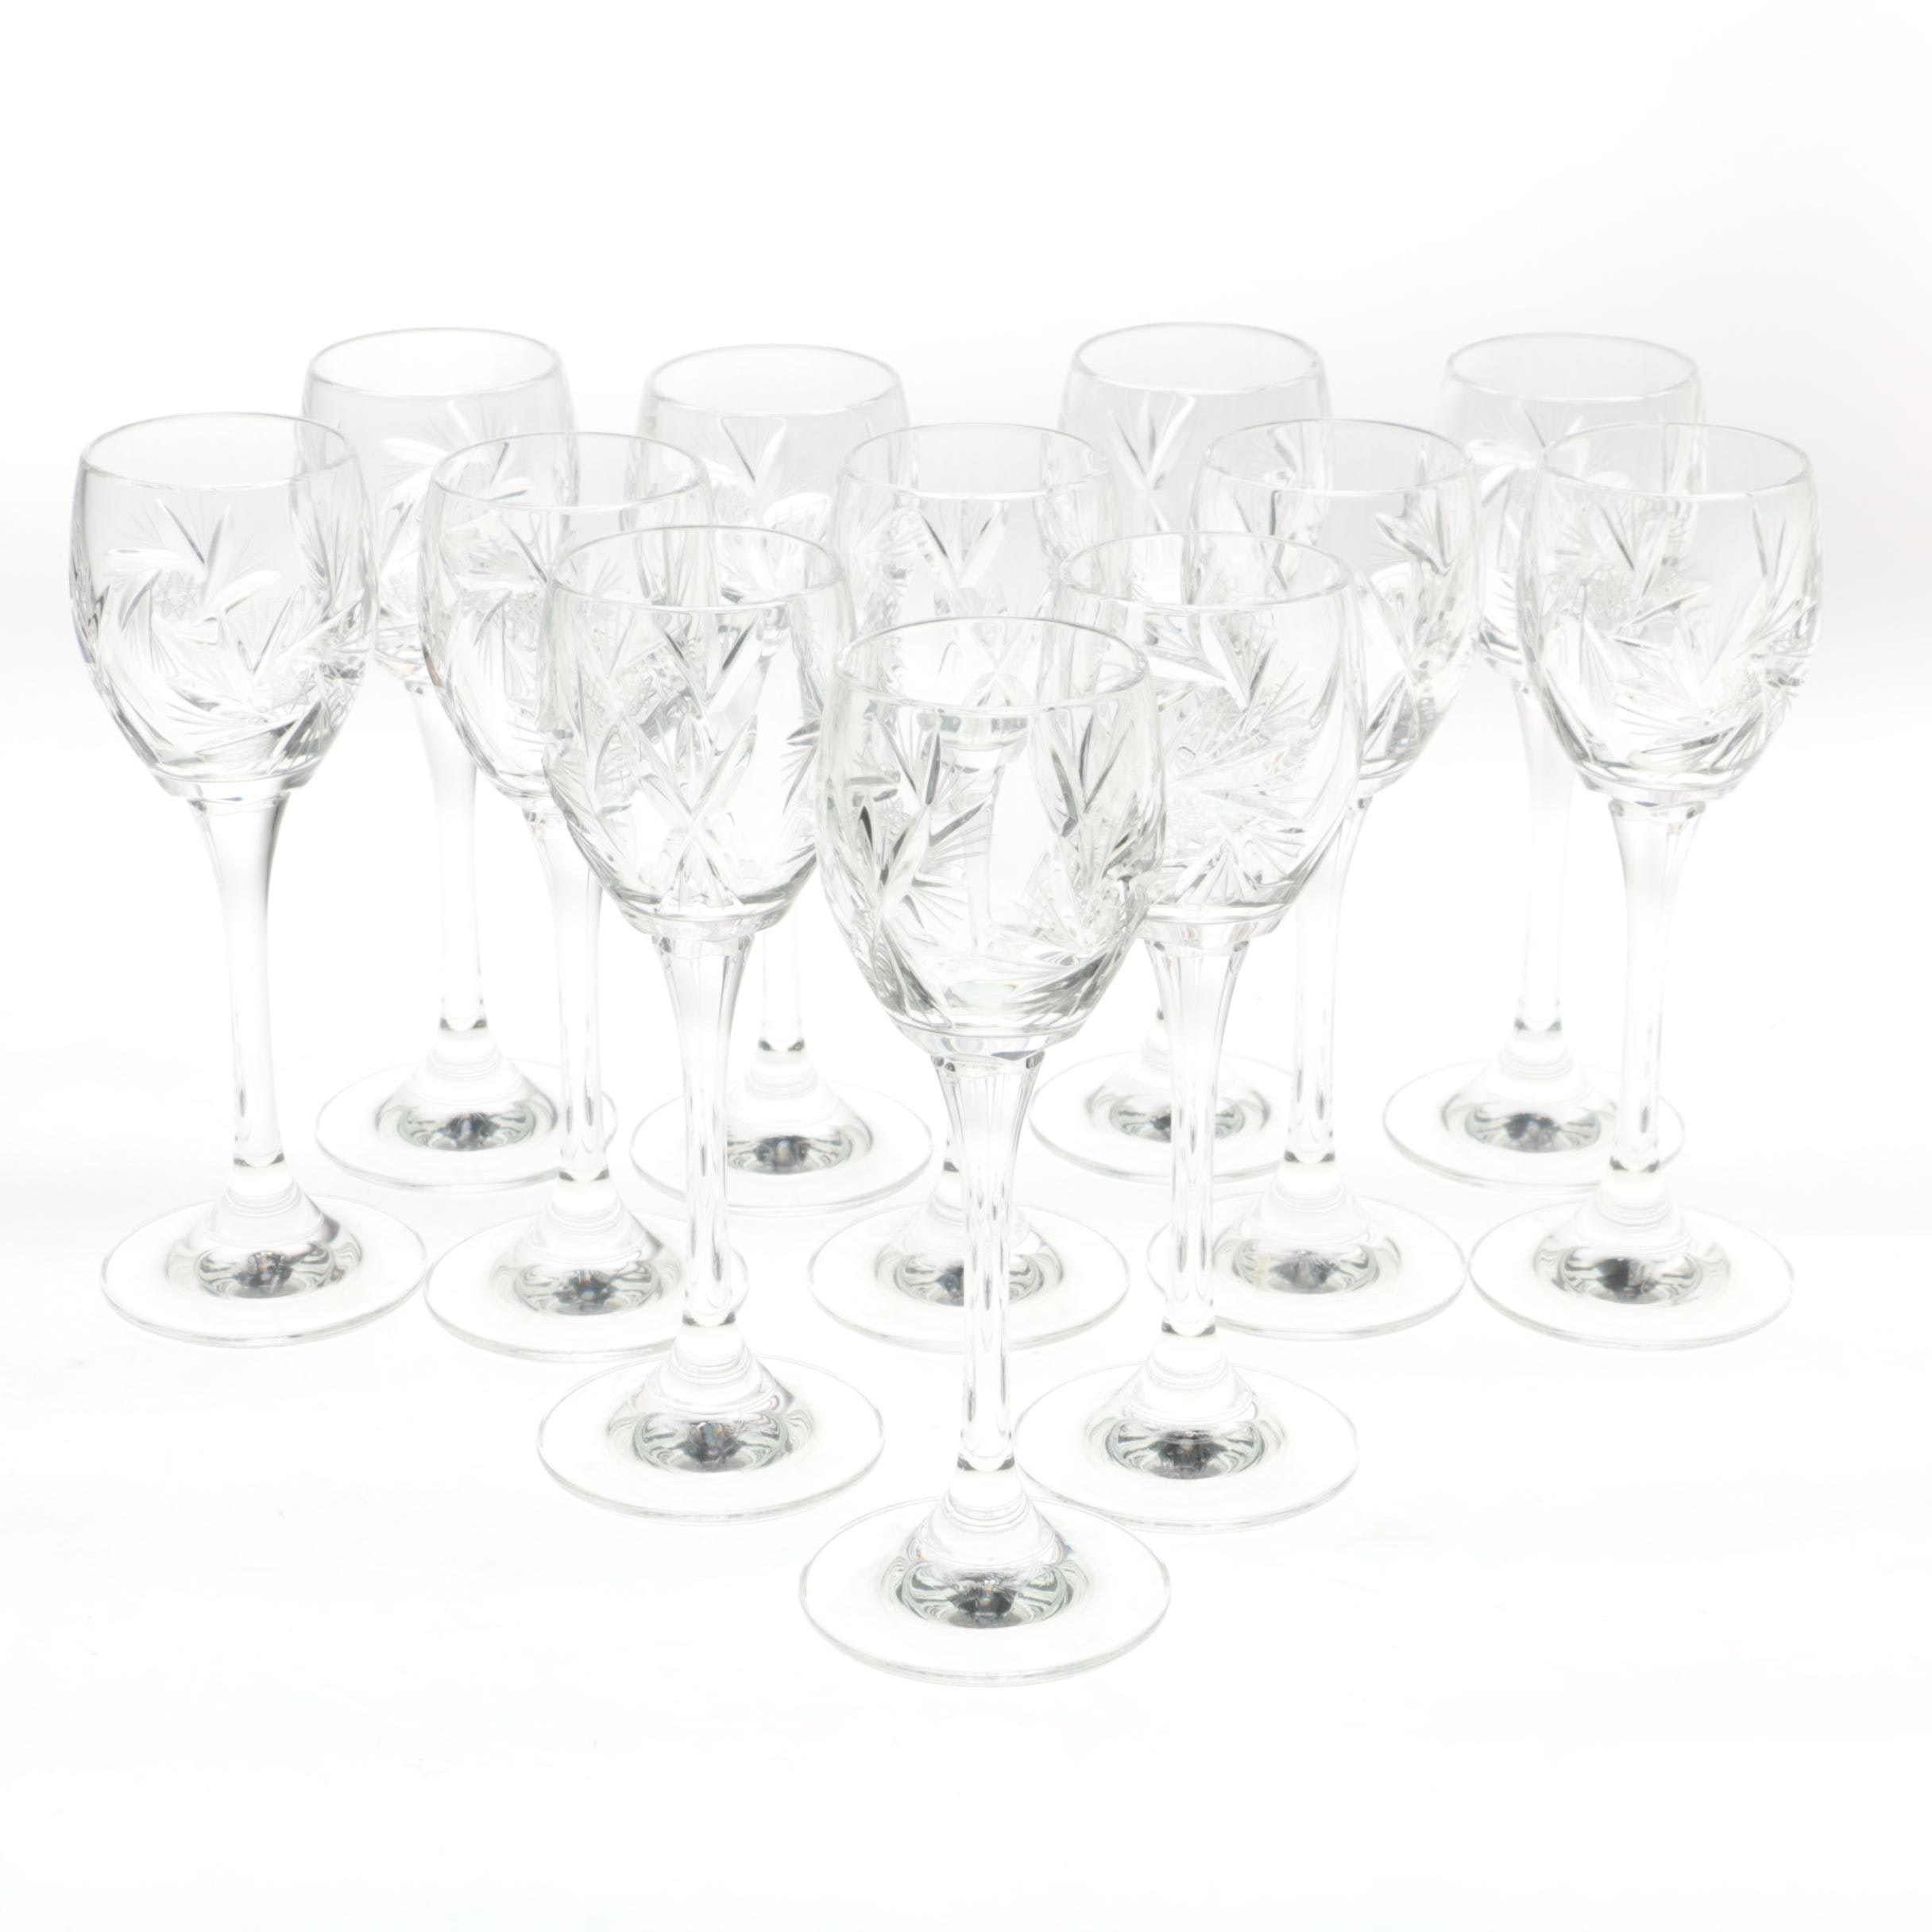 Collection of Crystal Cordial Glasses